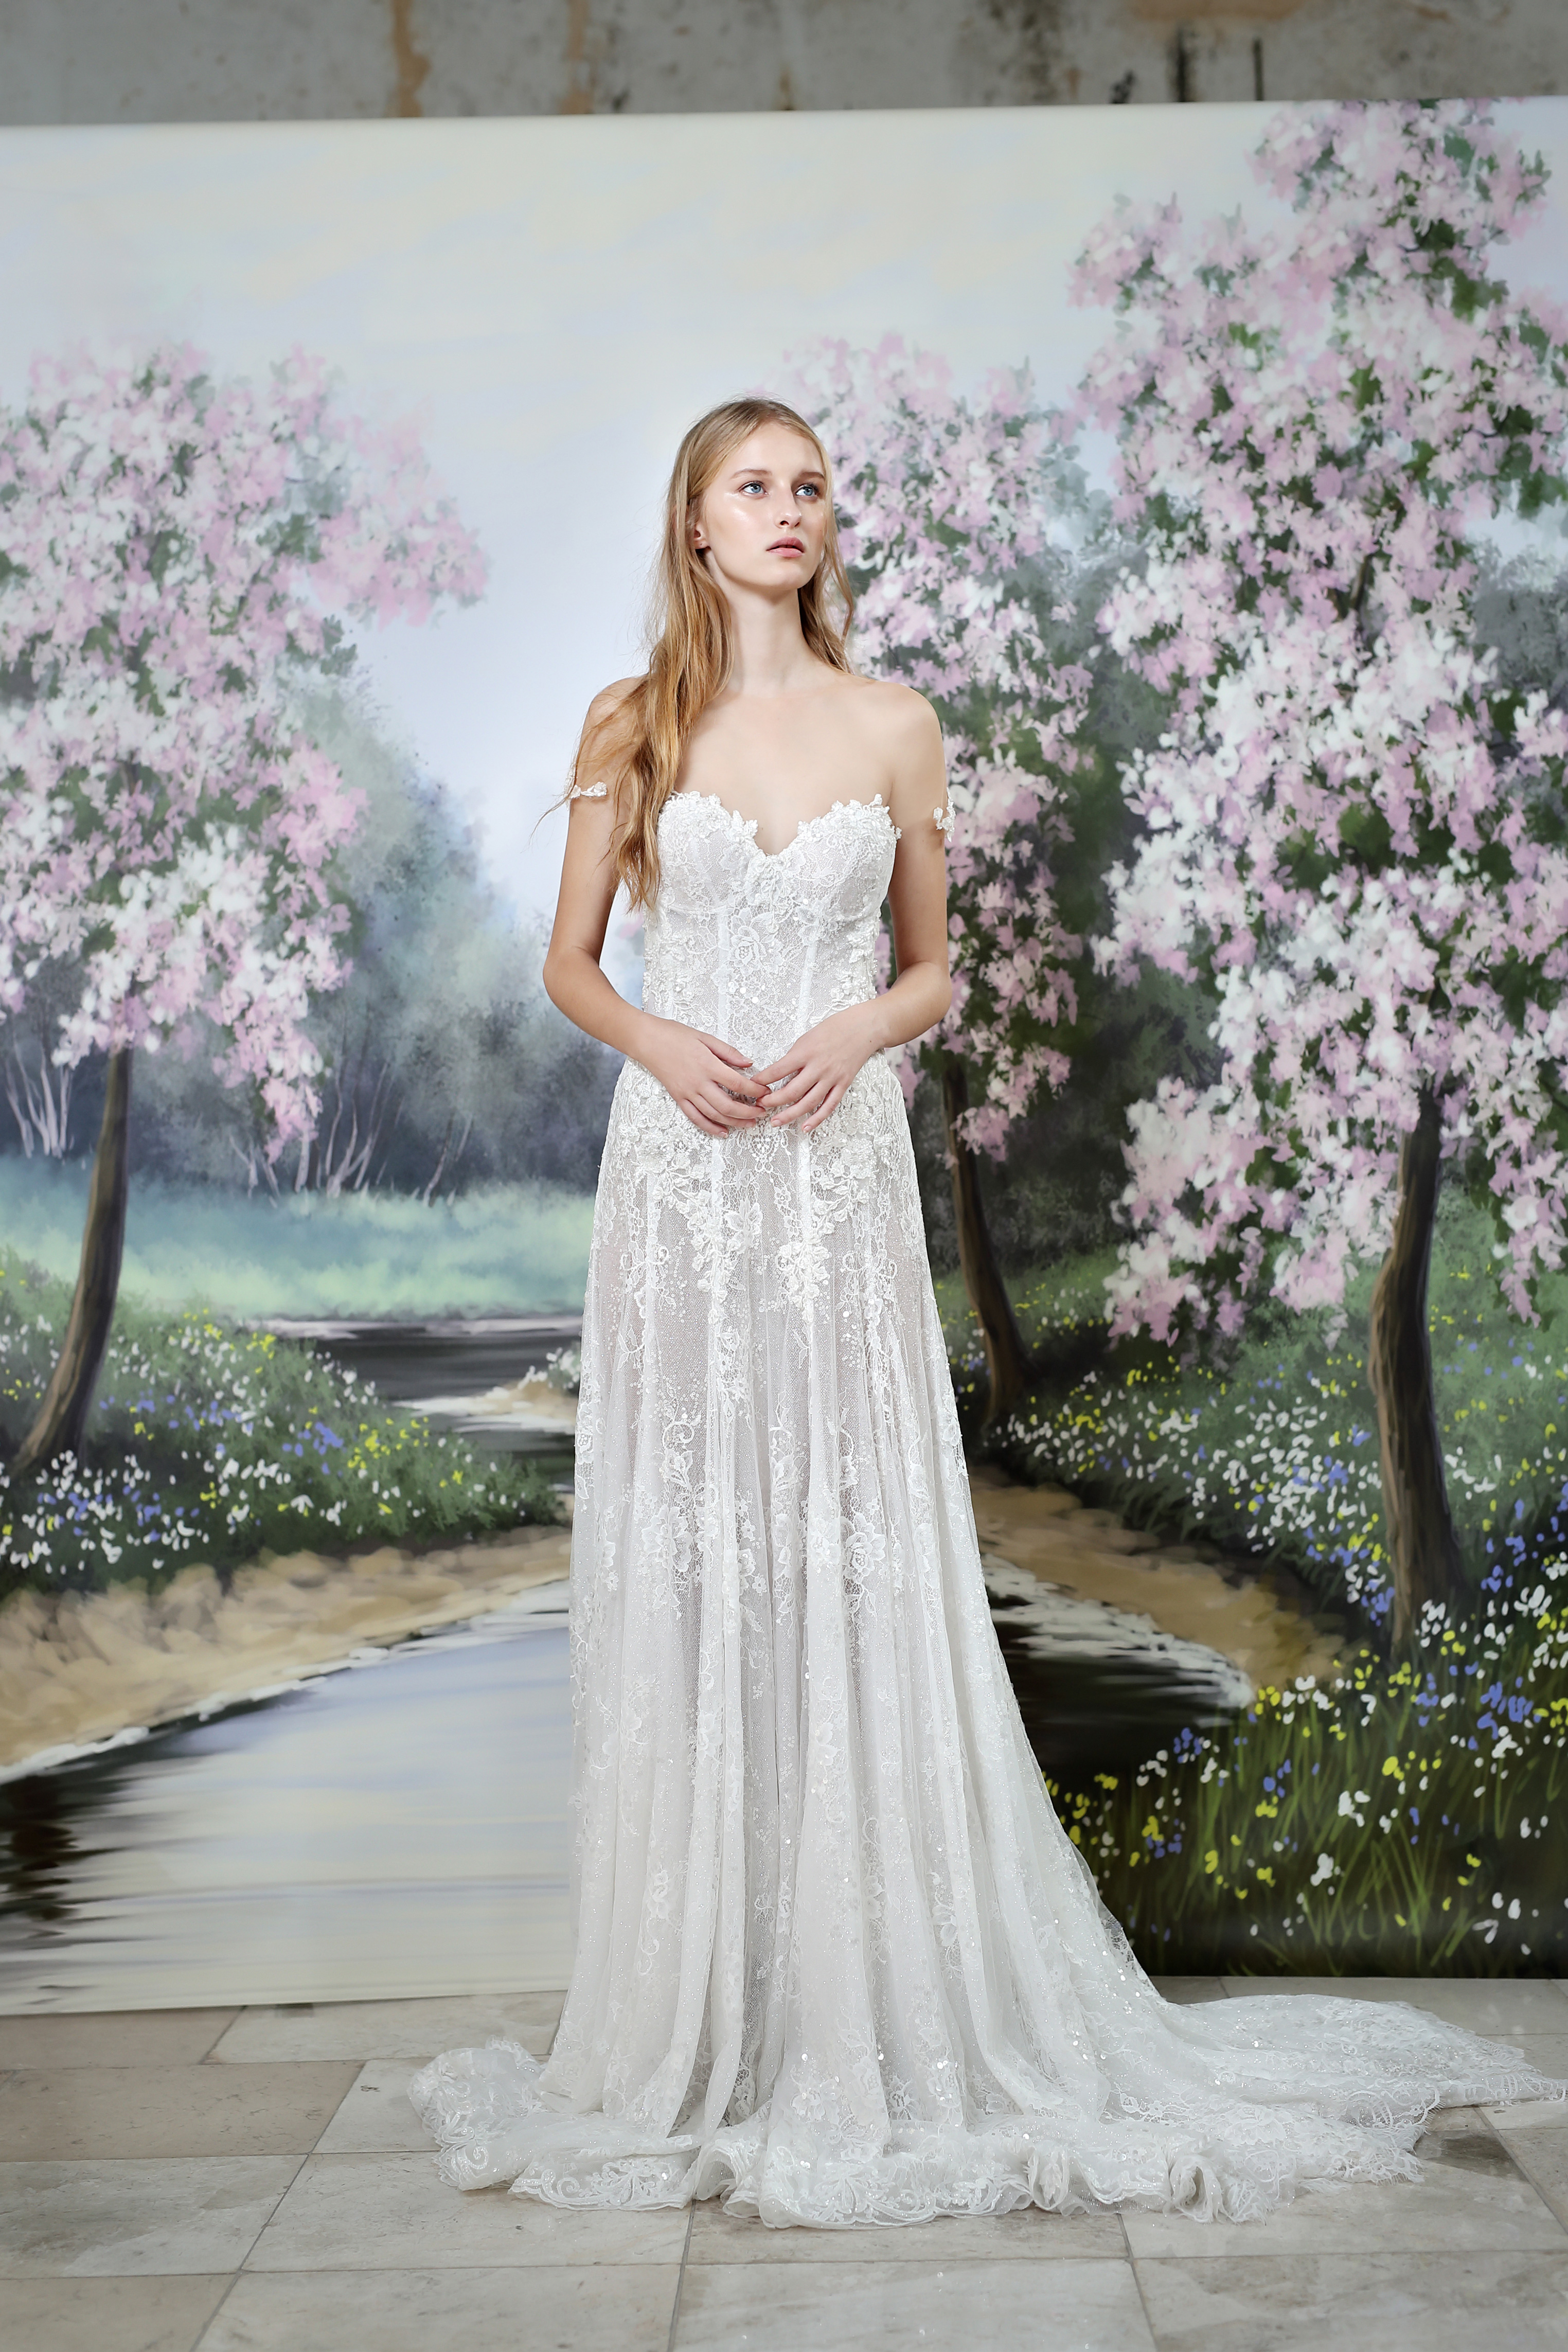 Gala by Galia Lahav strapless wedding dress fall 2019